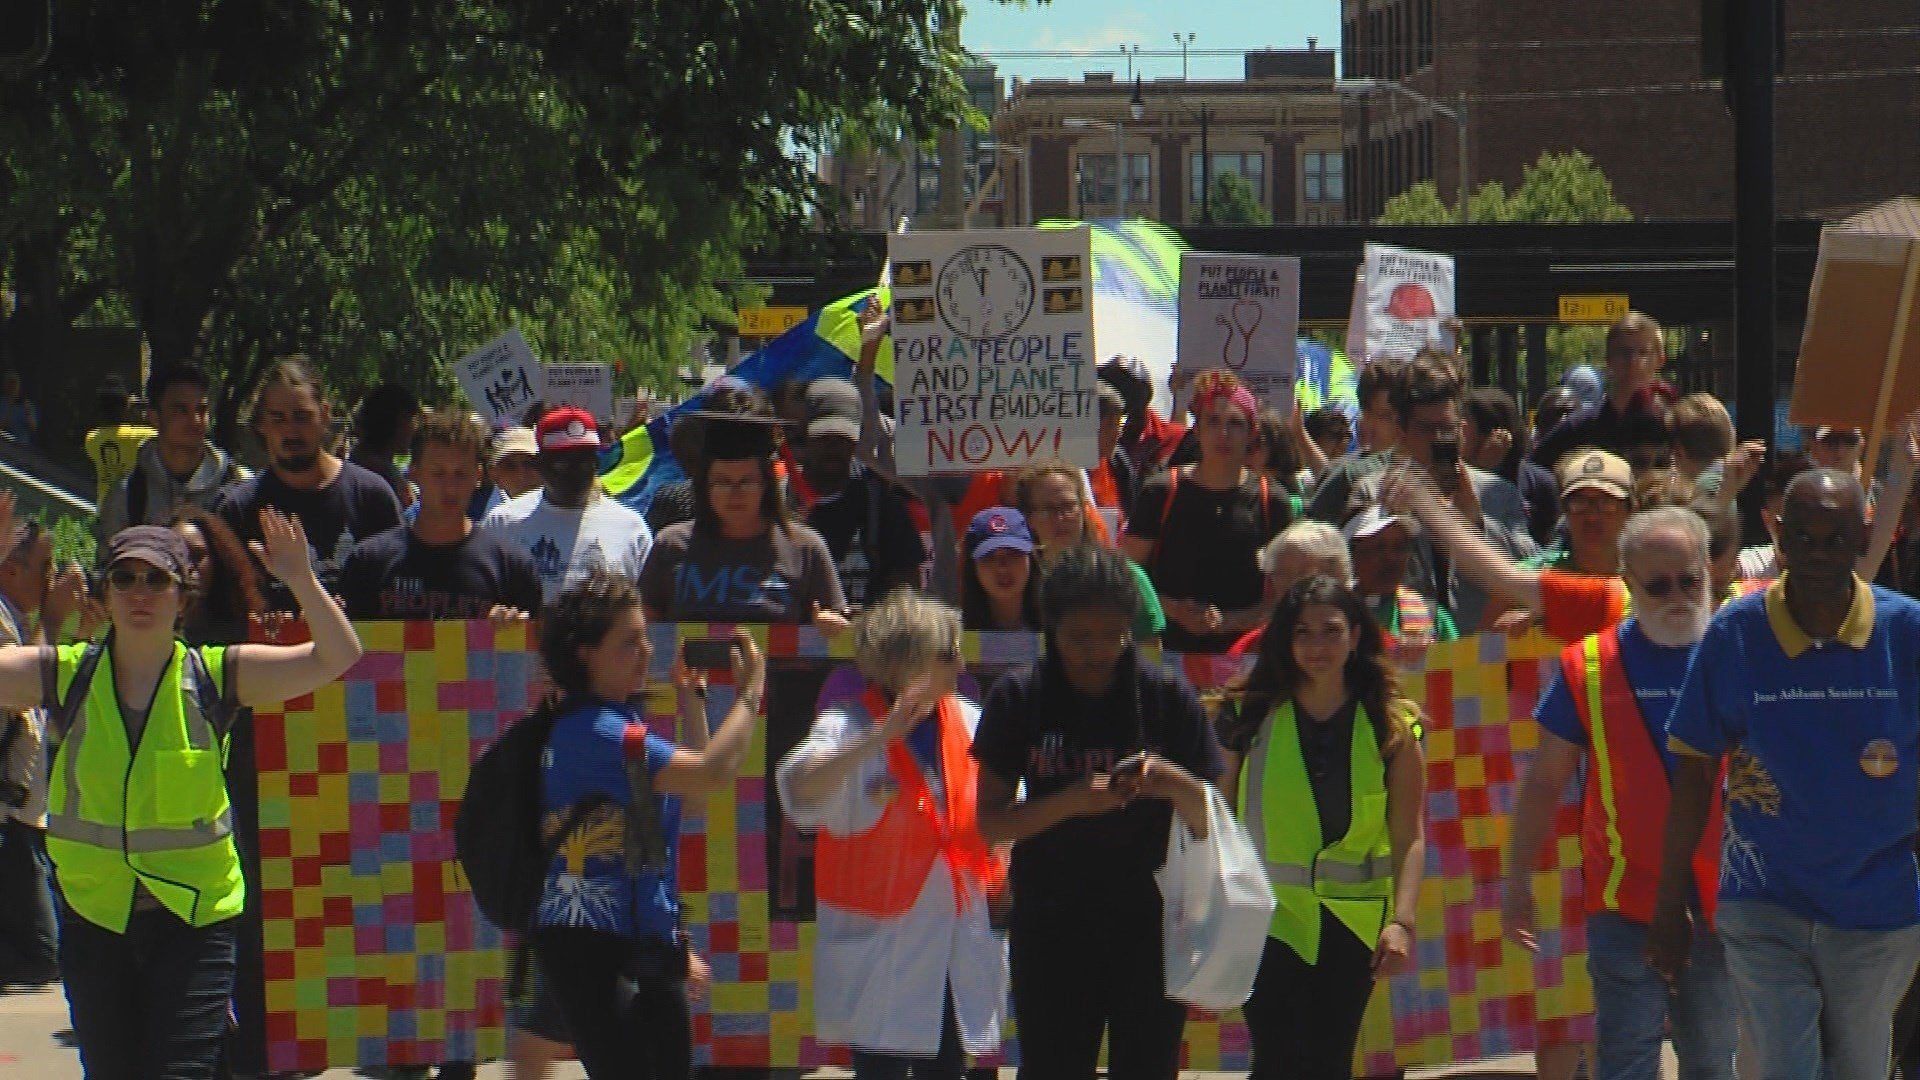 Protesters march 200 miles to protest Illinois budget